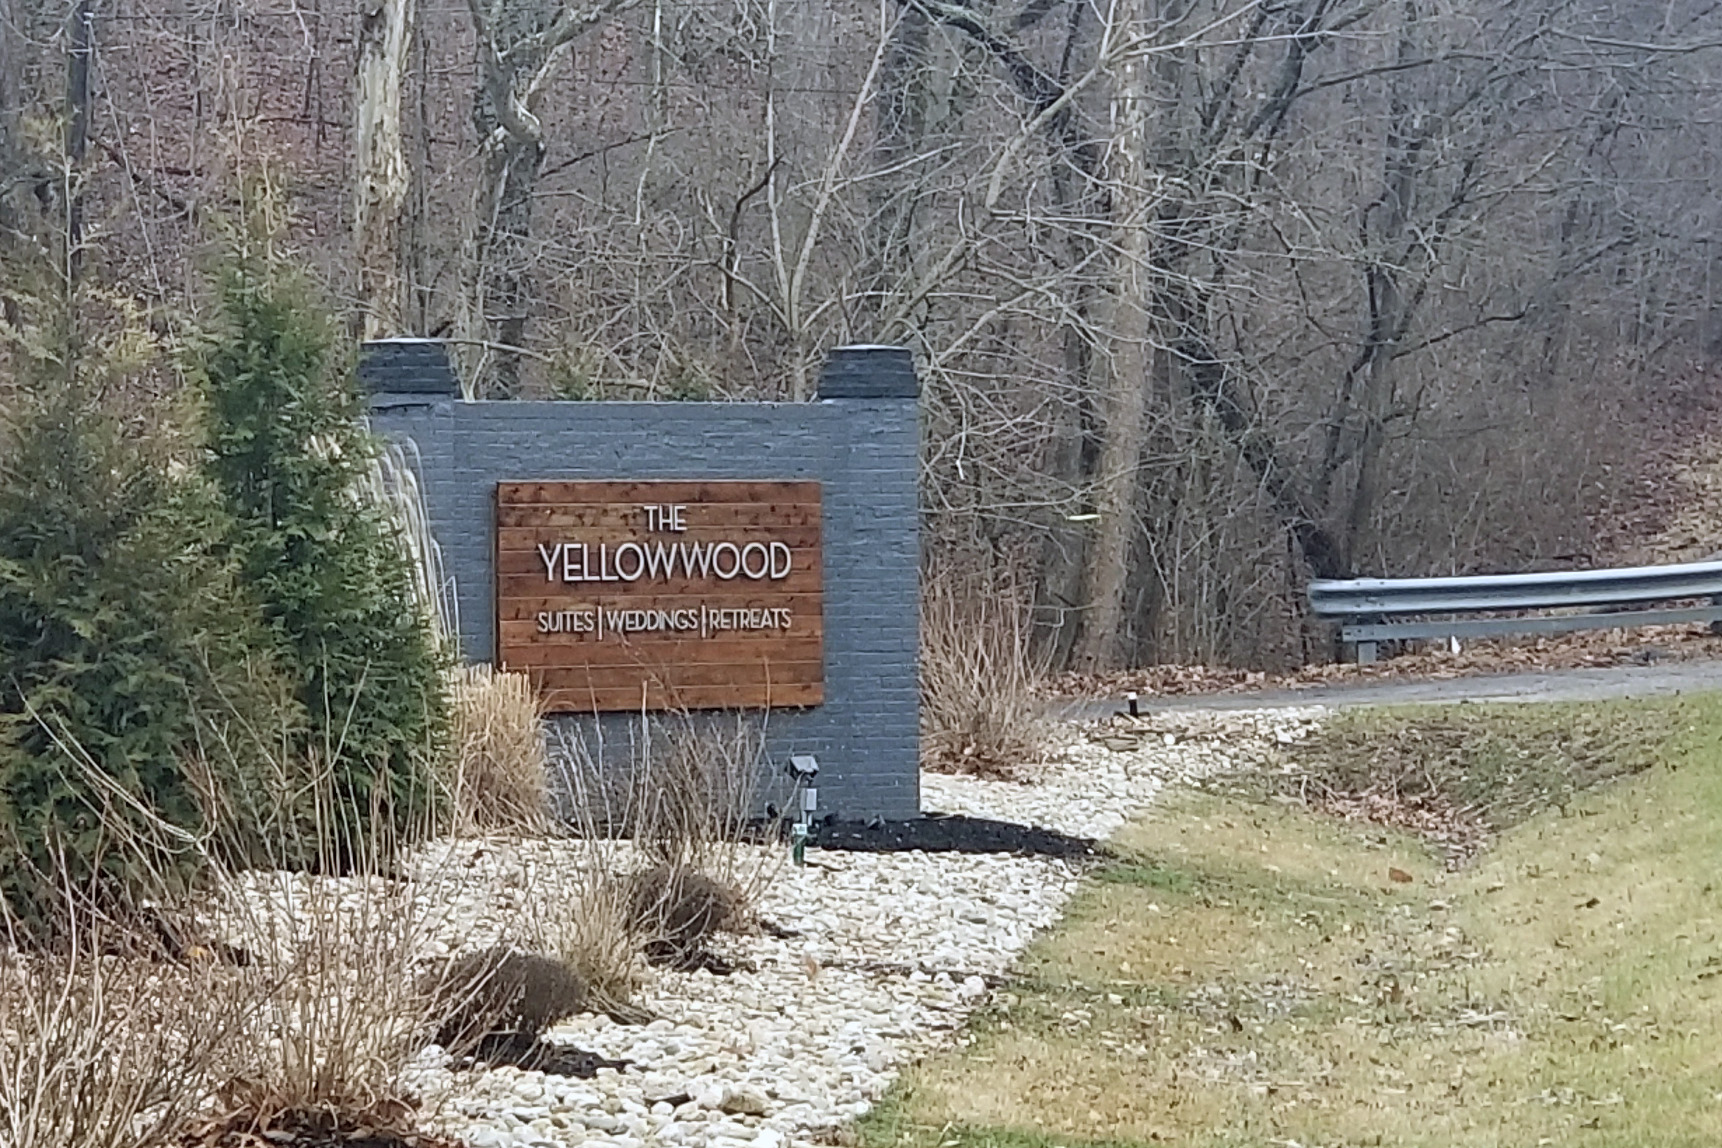 A sign for The Yellowwood hotel